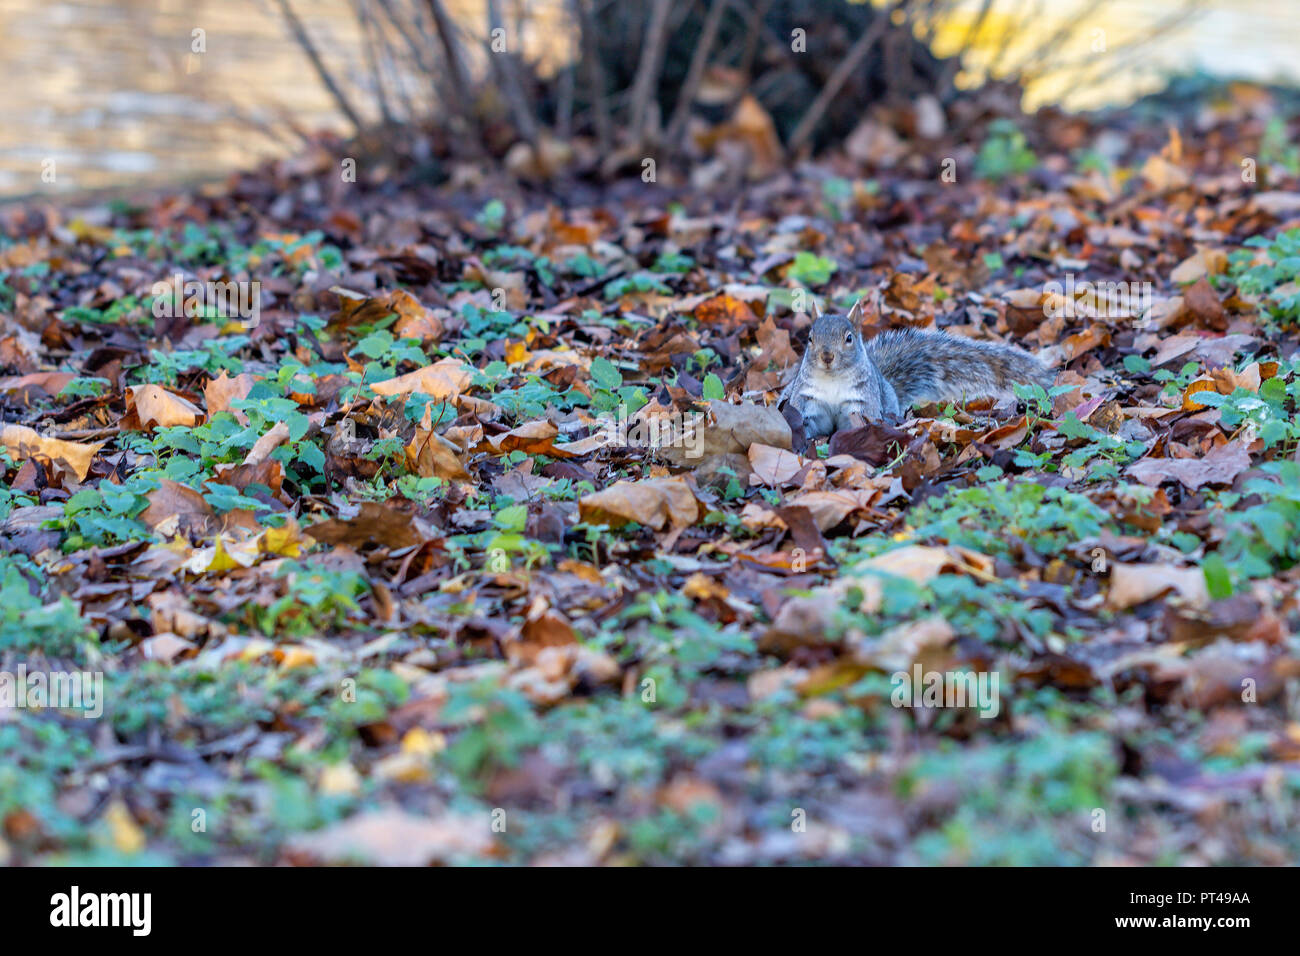 Grey squirrel foraging in autumn leaves in St Jame's Park, London - Stock Image